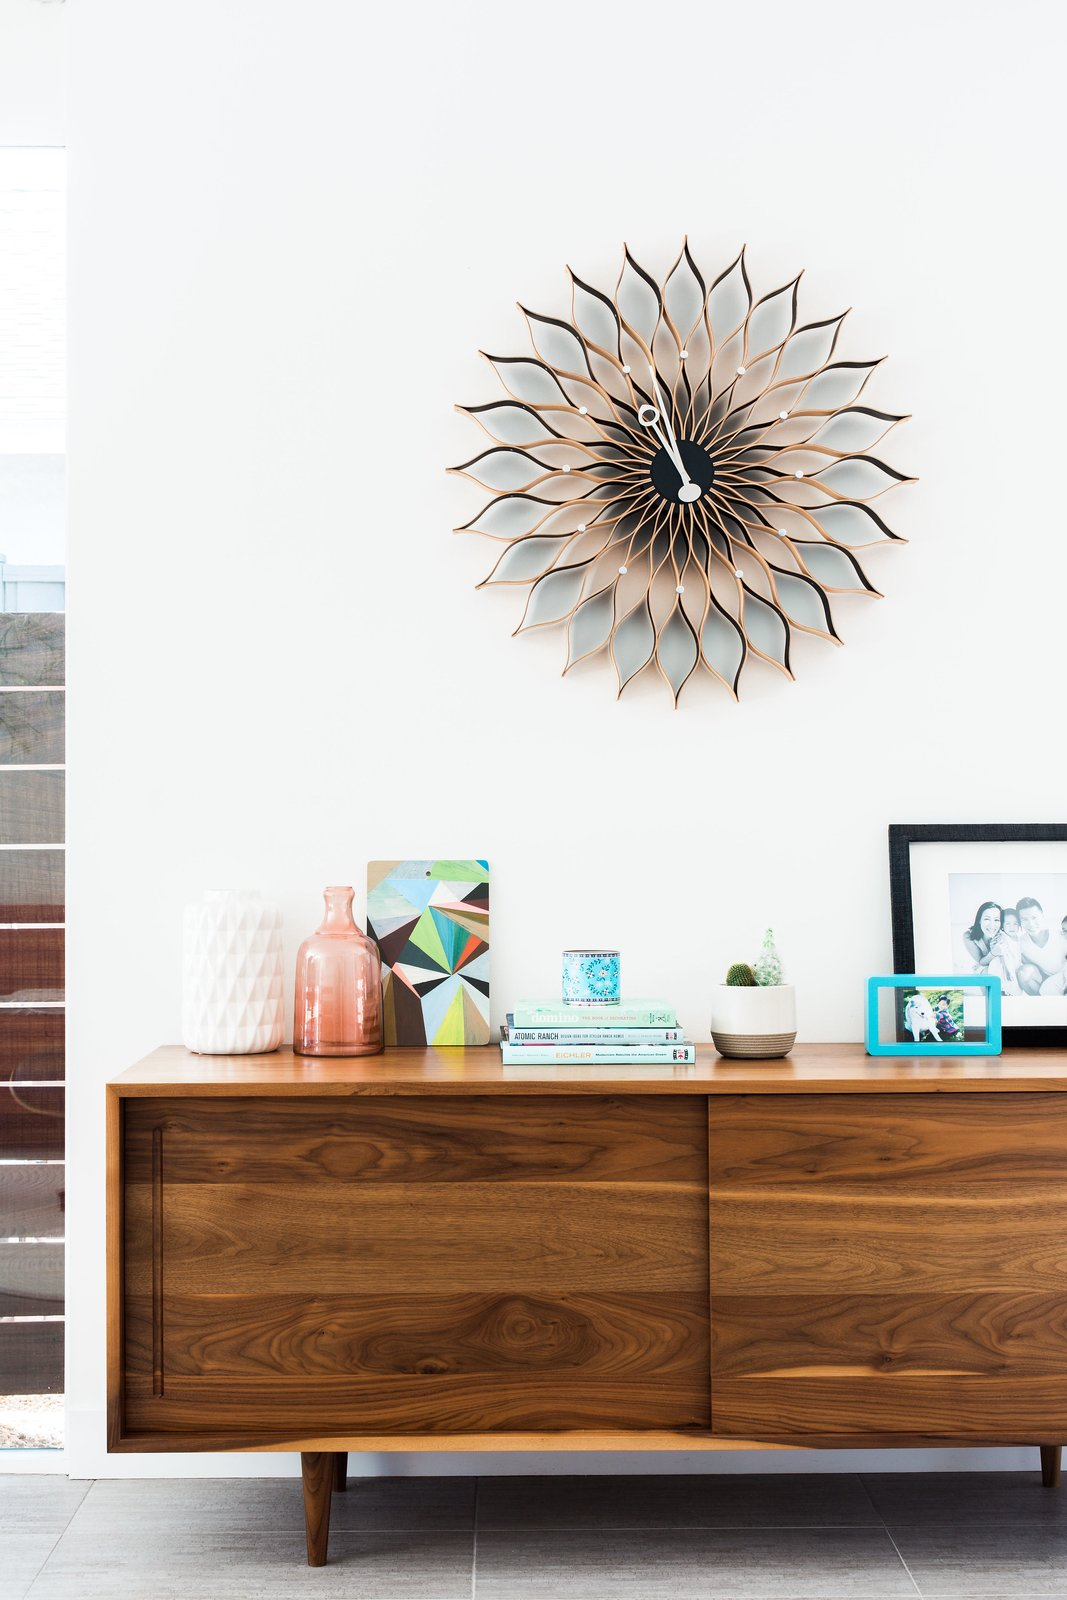 Living Room and Console Tables  Photo 9 of 11 in An Interior Designer Launches Her Career by Renovating Her Family's Midcentury Eichler